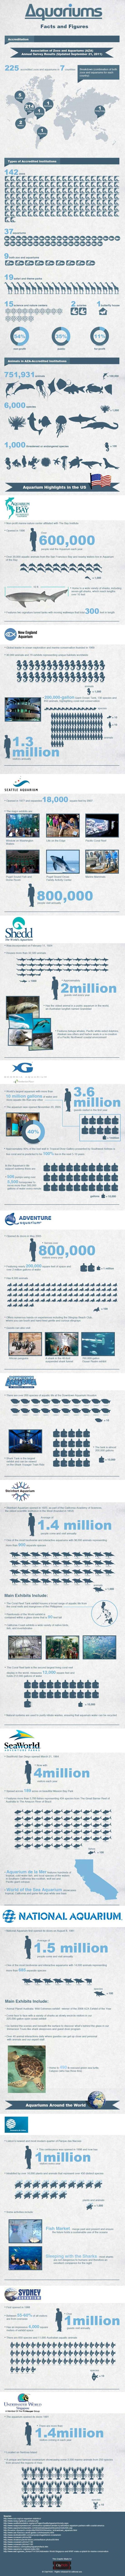 Aquariums - Facts and Figures